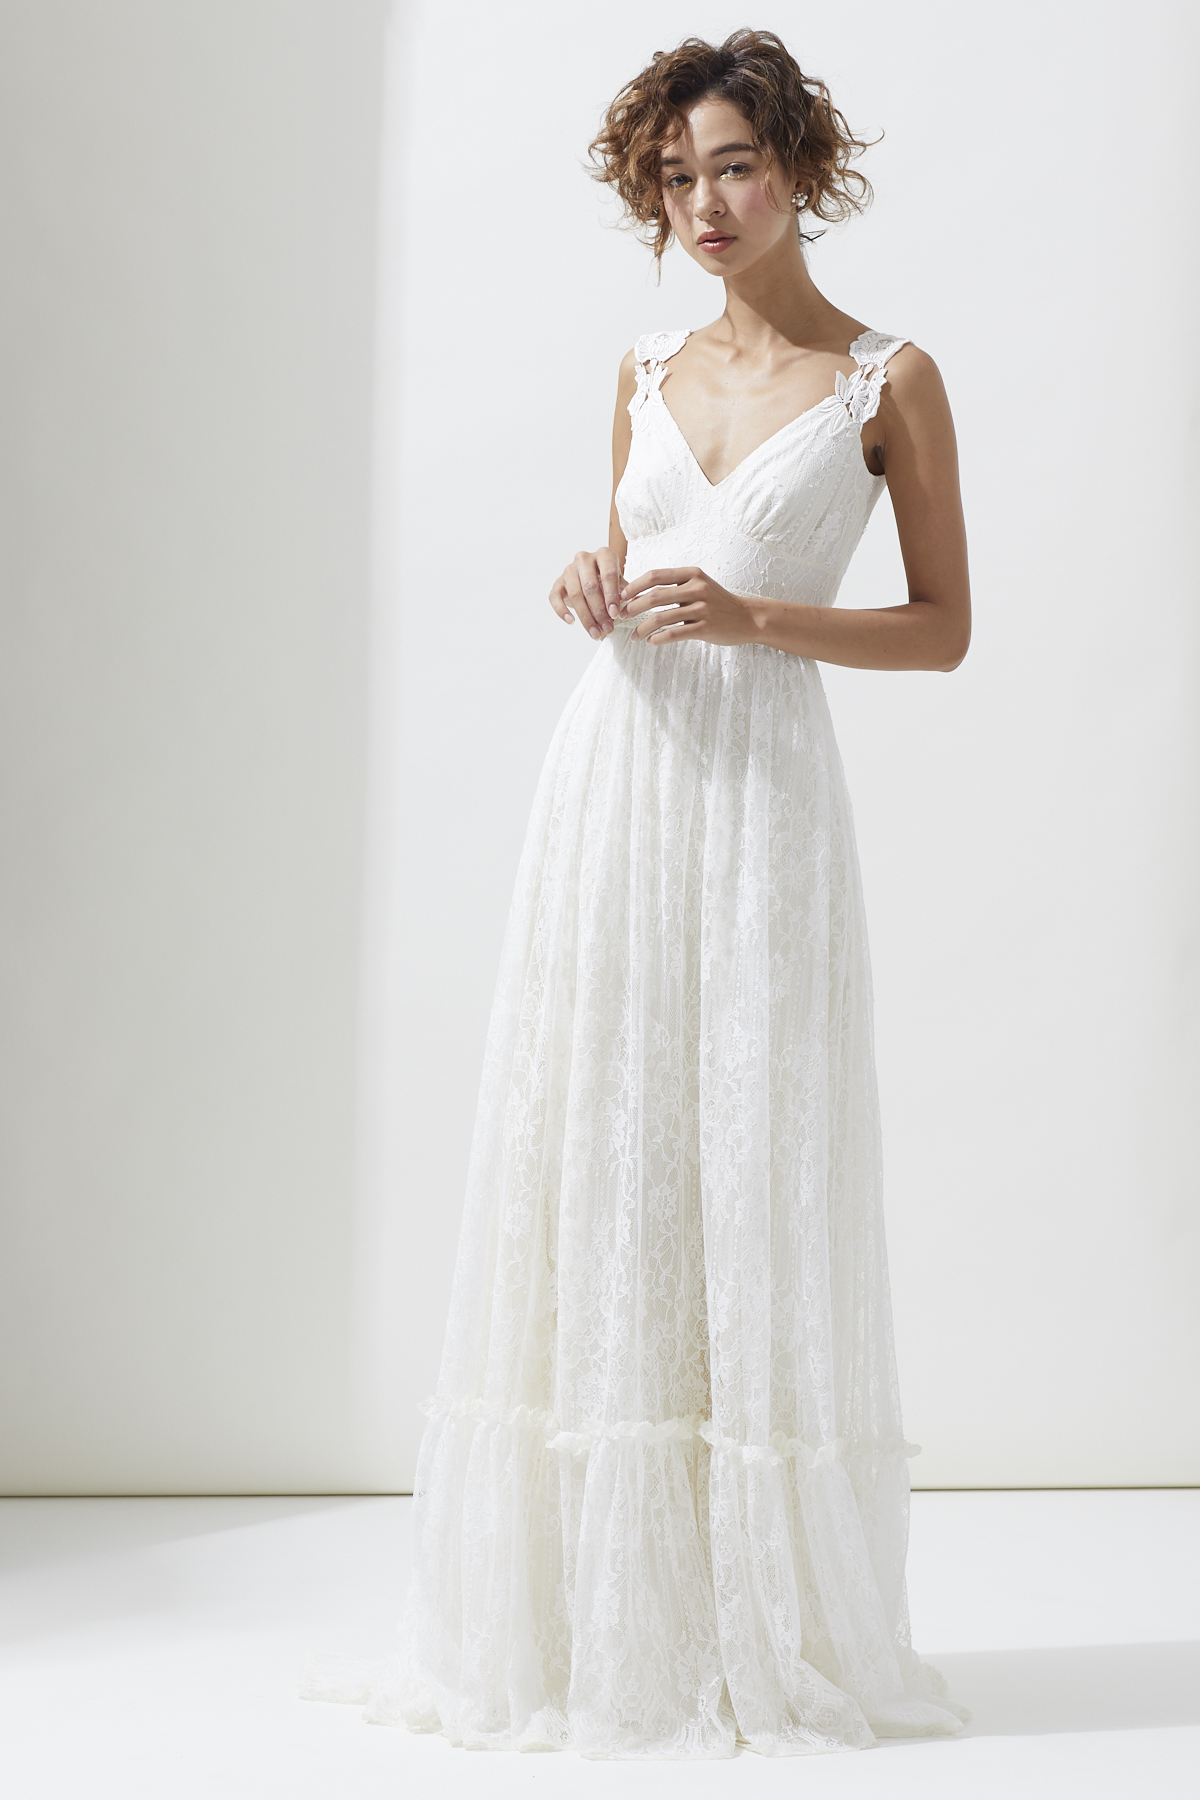 [RENTAL]Claire Pettibone[Savannah Gown]